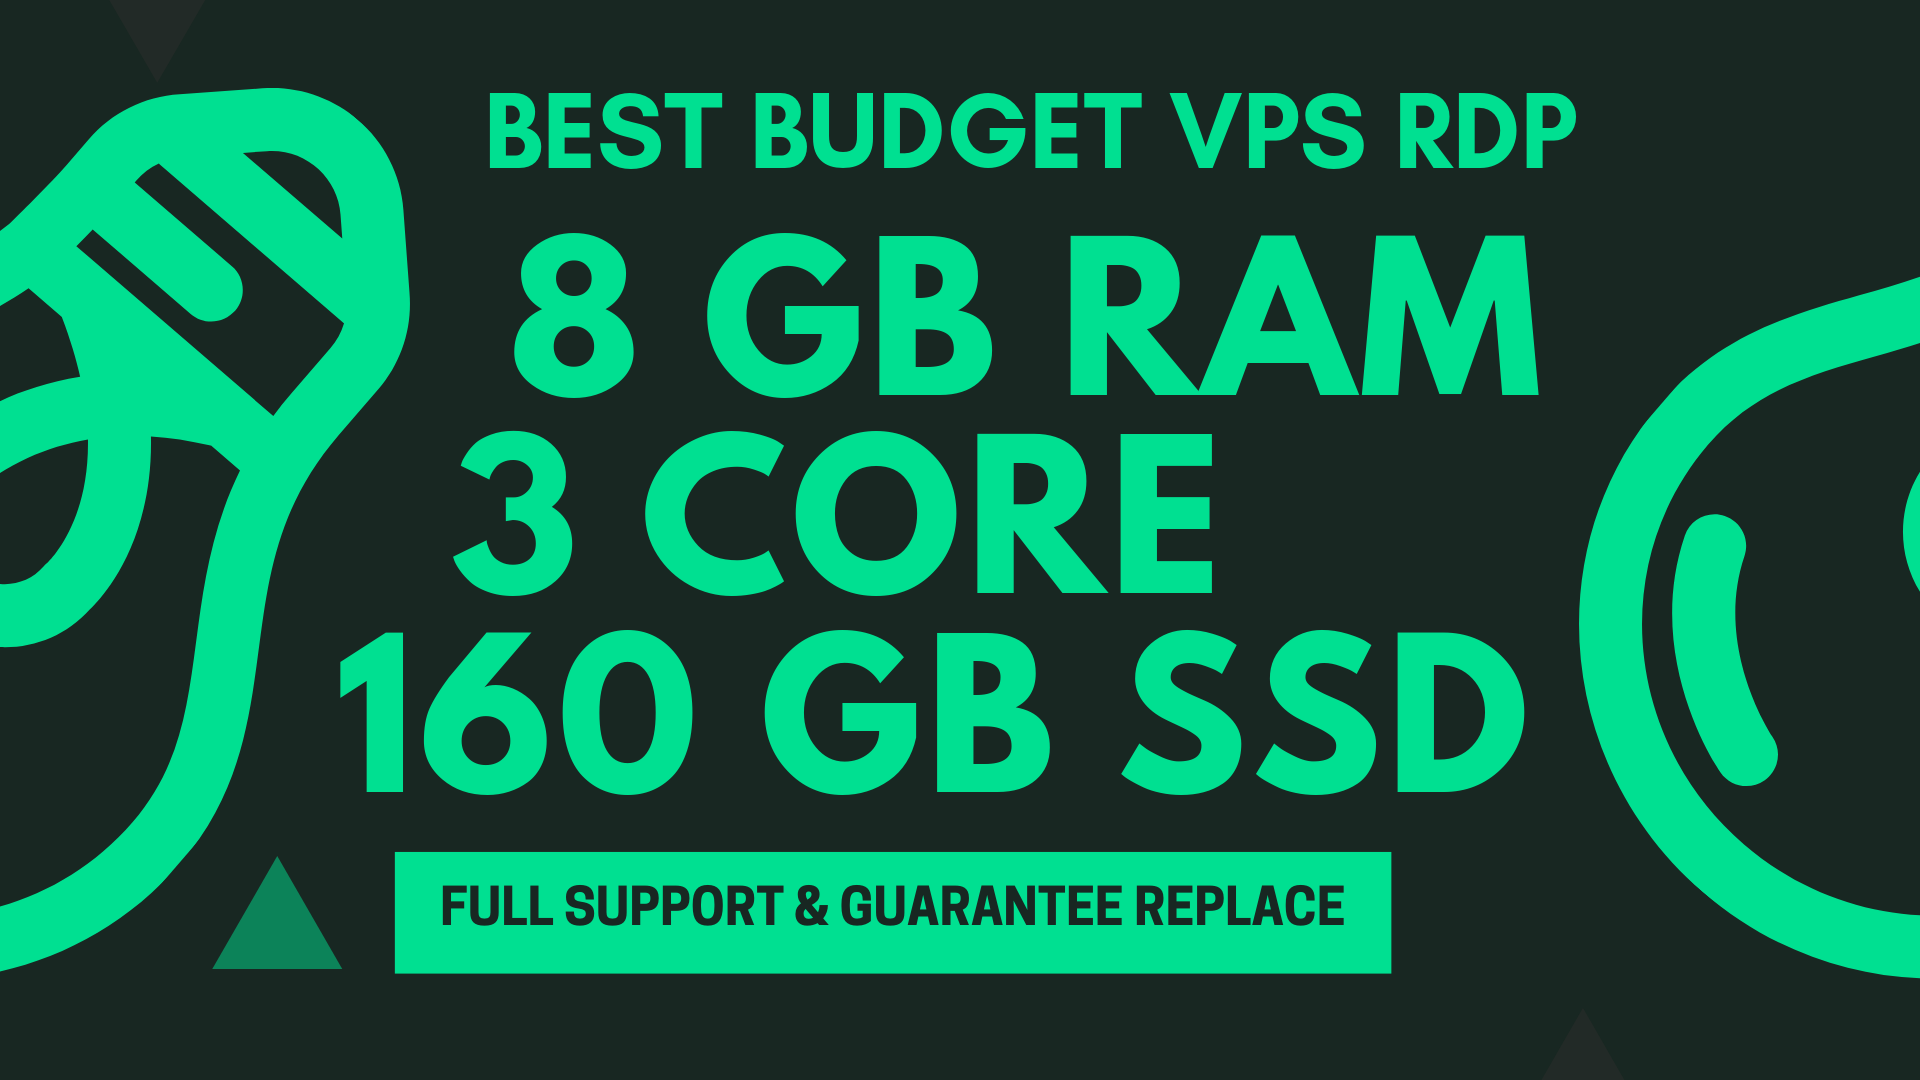 BEST BUDGET WINDOWS RDP VPS 8GB RAM 3CORE 160GB SSD for $10